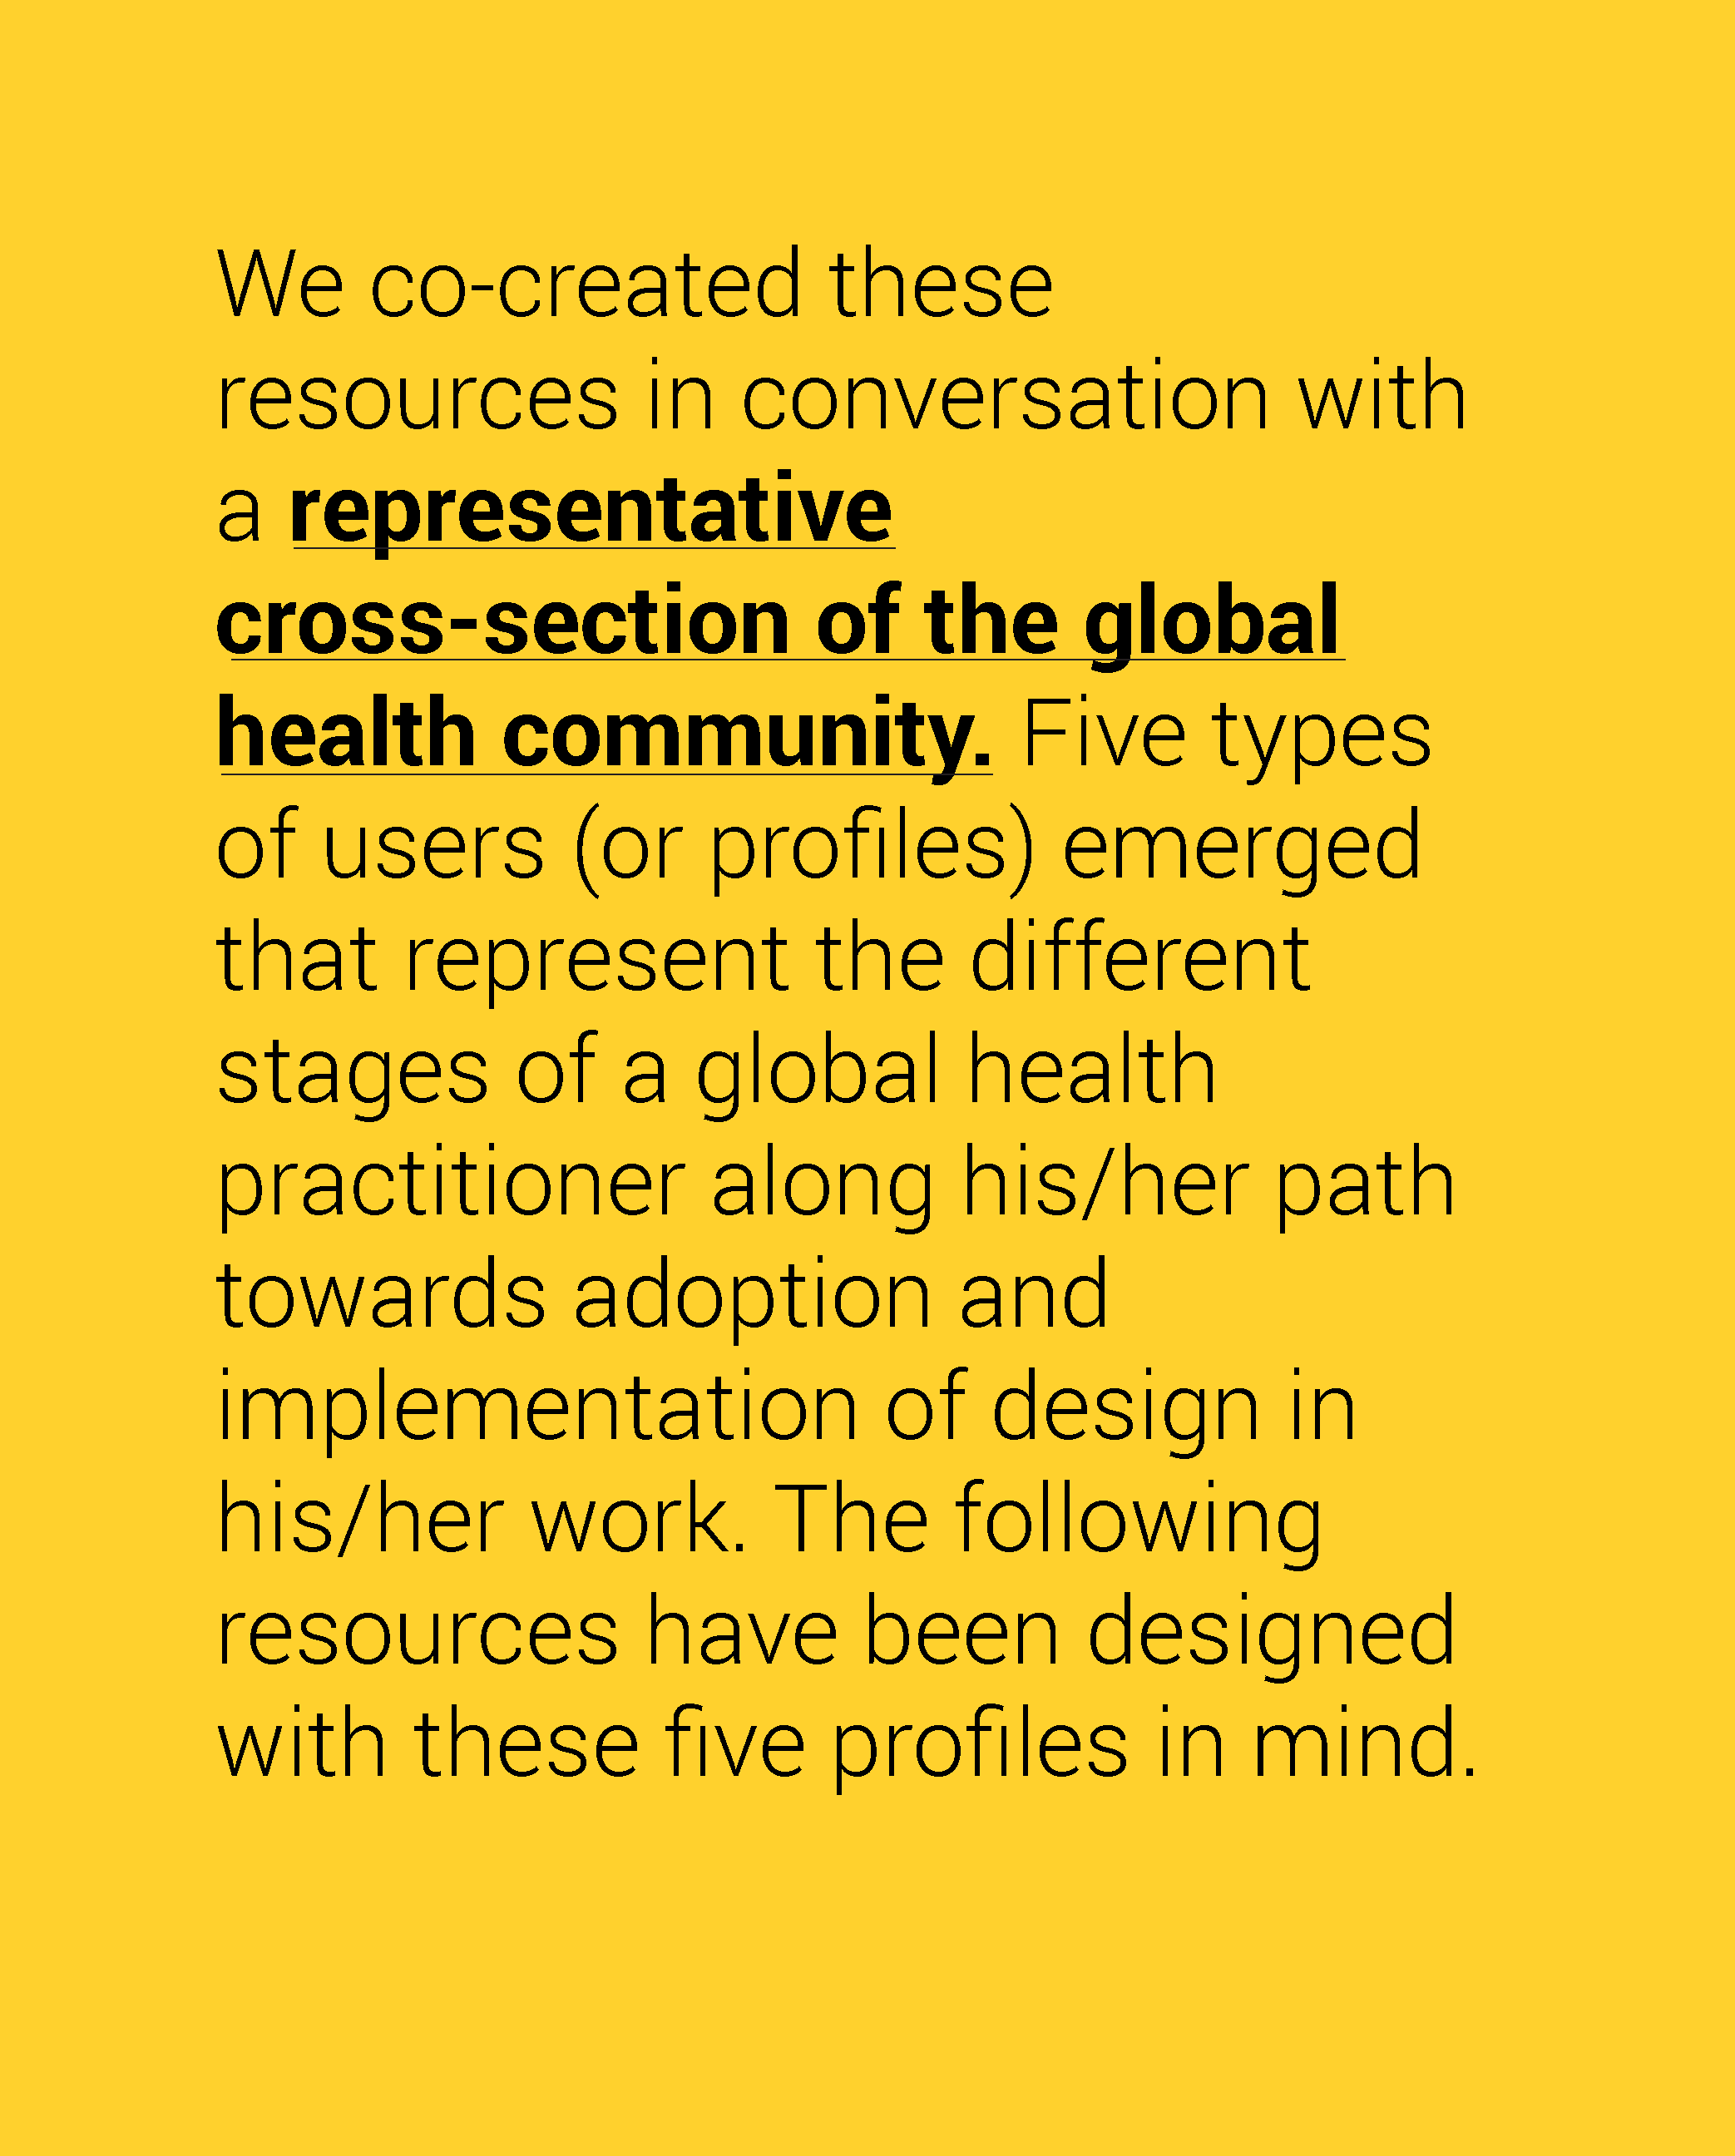 We co-created these resources in conversation with a representative cross-section of the global health community. Five types of users (or profiles) emerged that represent the different stages of a global health practitioner in his/her path towards adoption and implementation of design in his/her work. The following resources have been designed with these five profiles in mind.